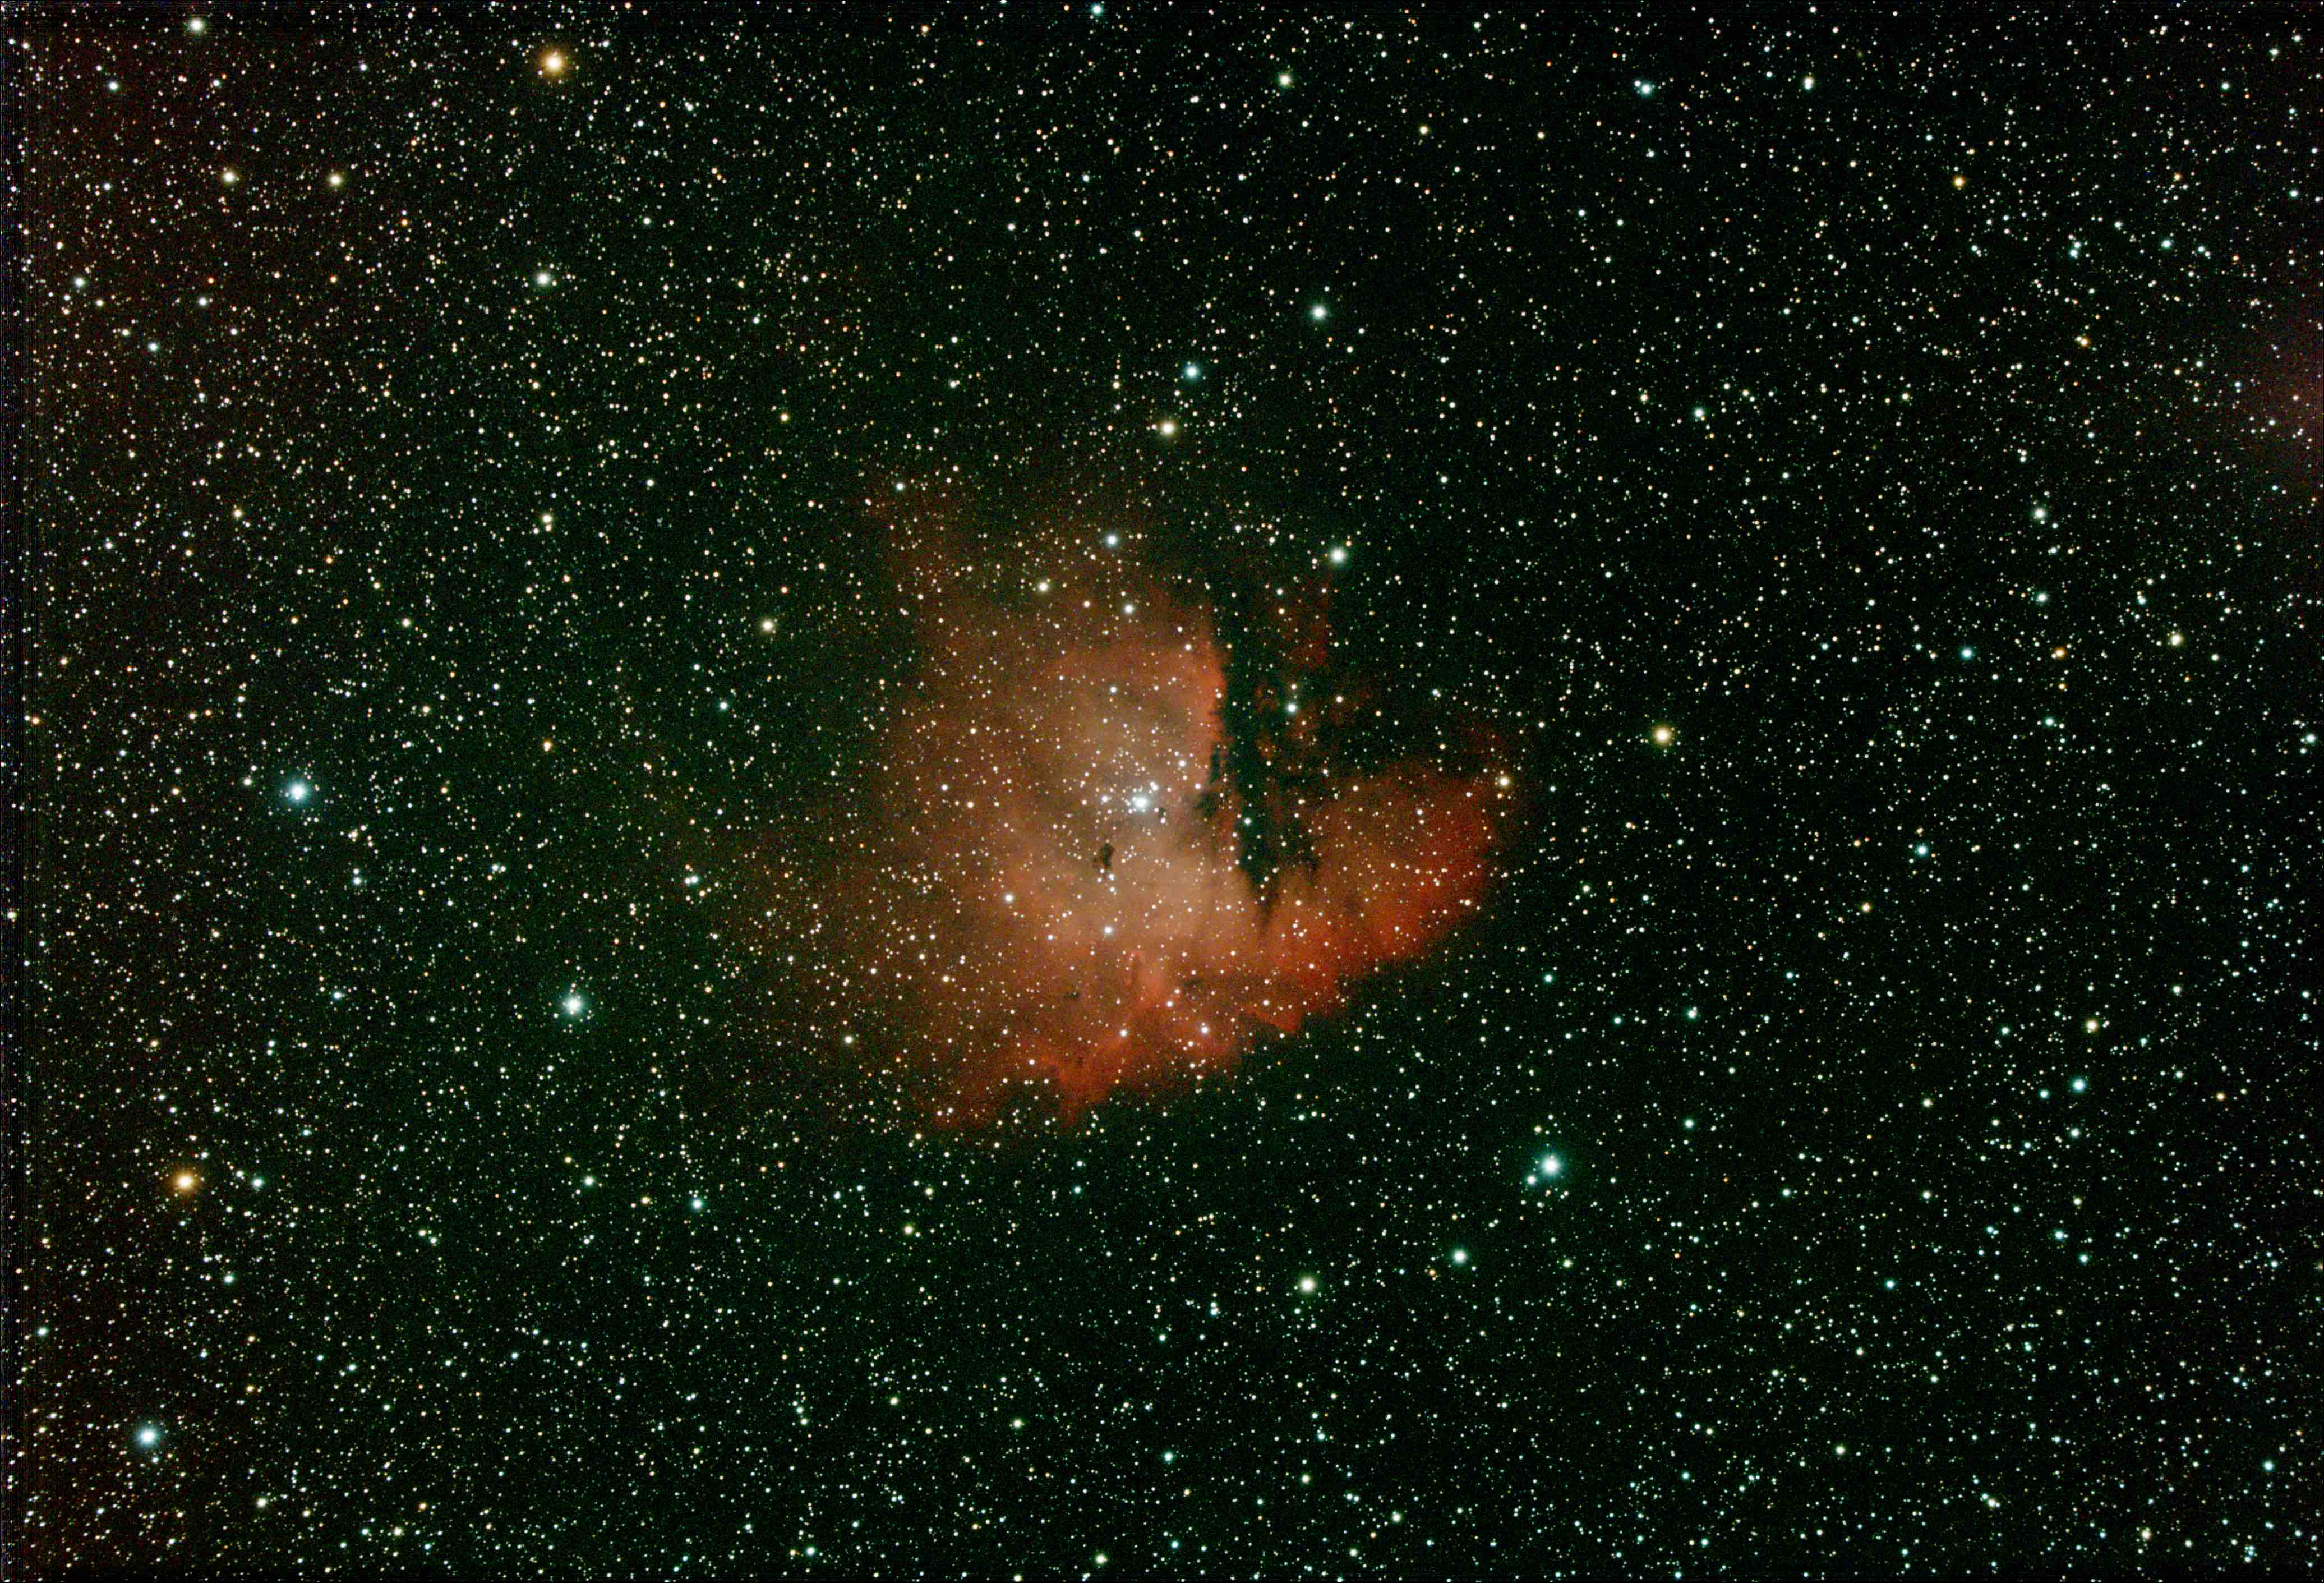 NGC281_23_02_35_161frames_2415s_WithDisplayStretch.jpg